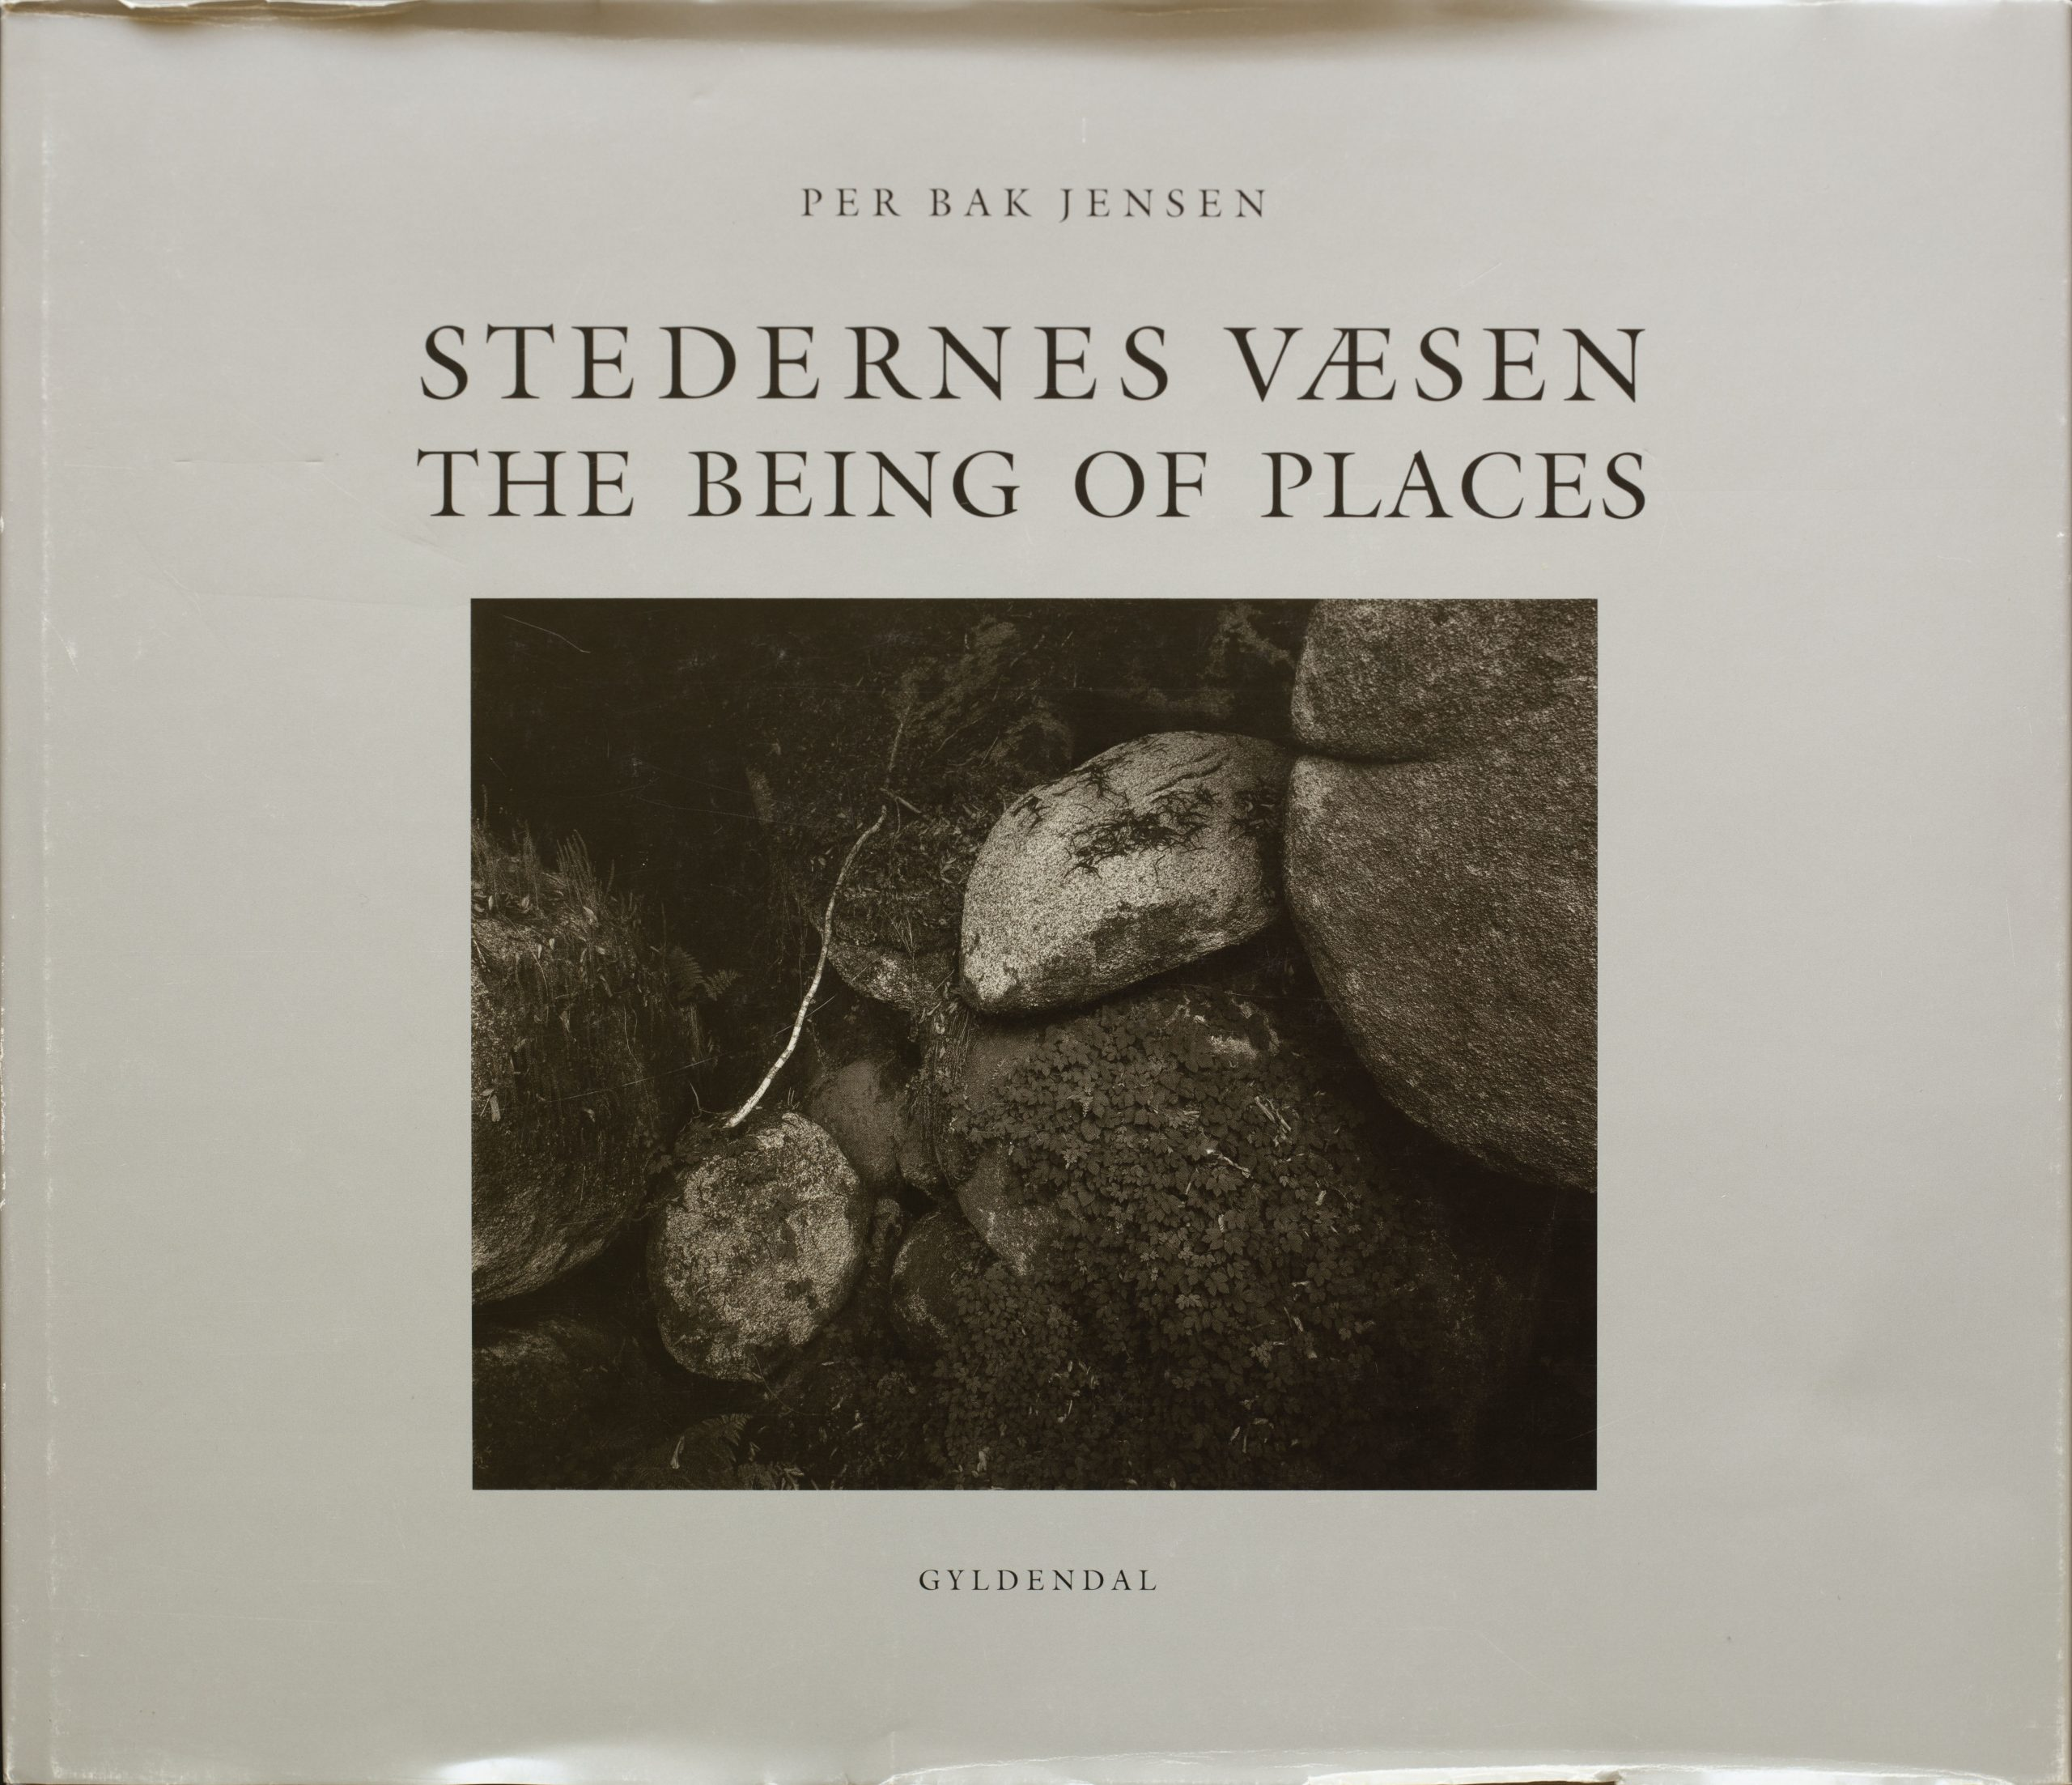 Exhibition Preview: Per Bak Jensen. Books and Catalogs